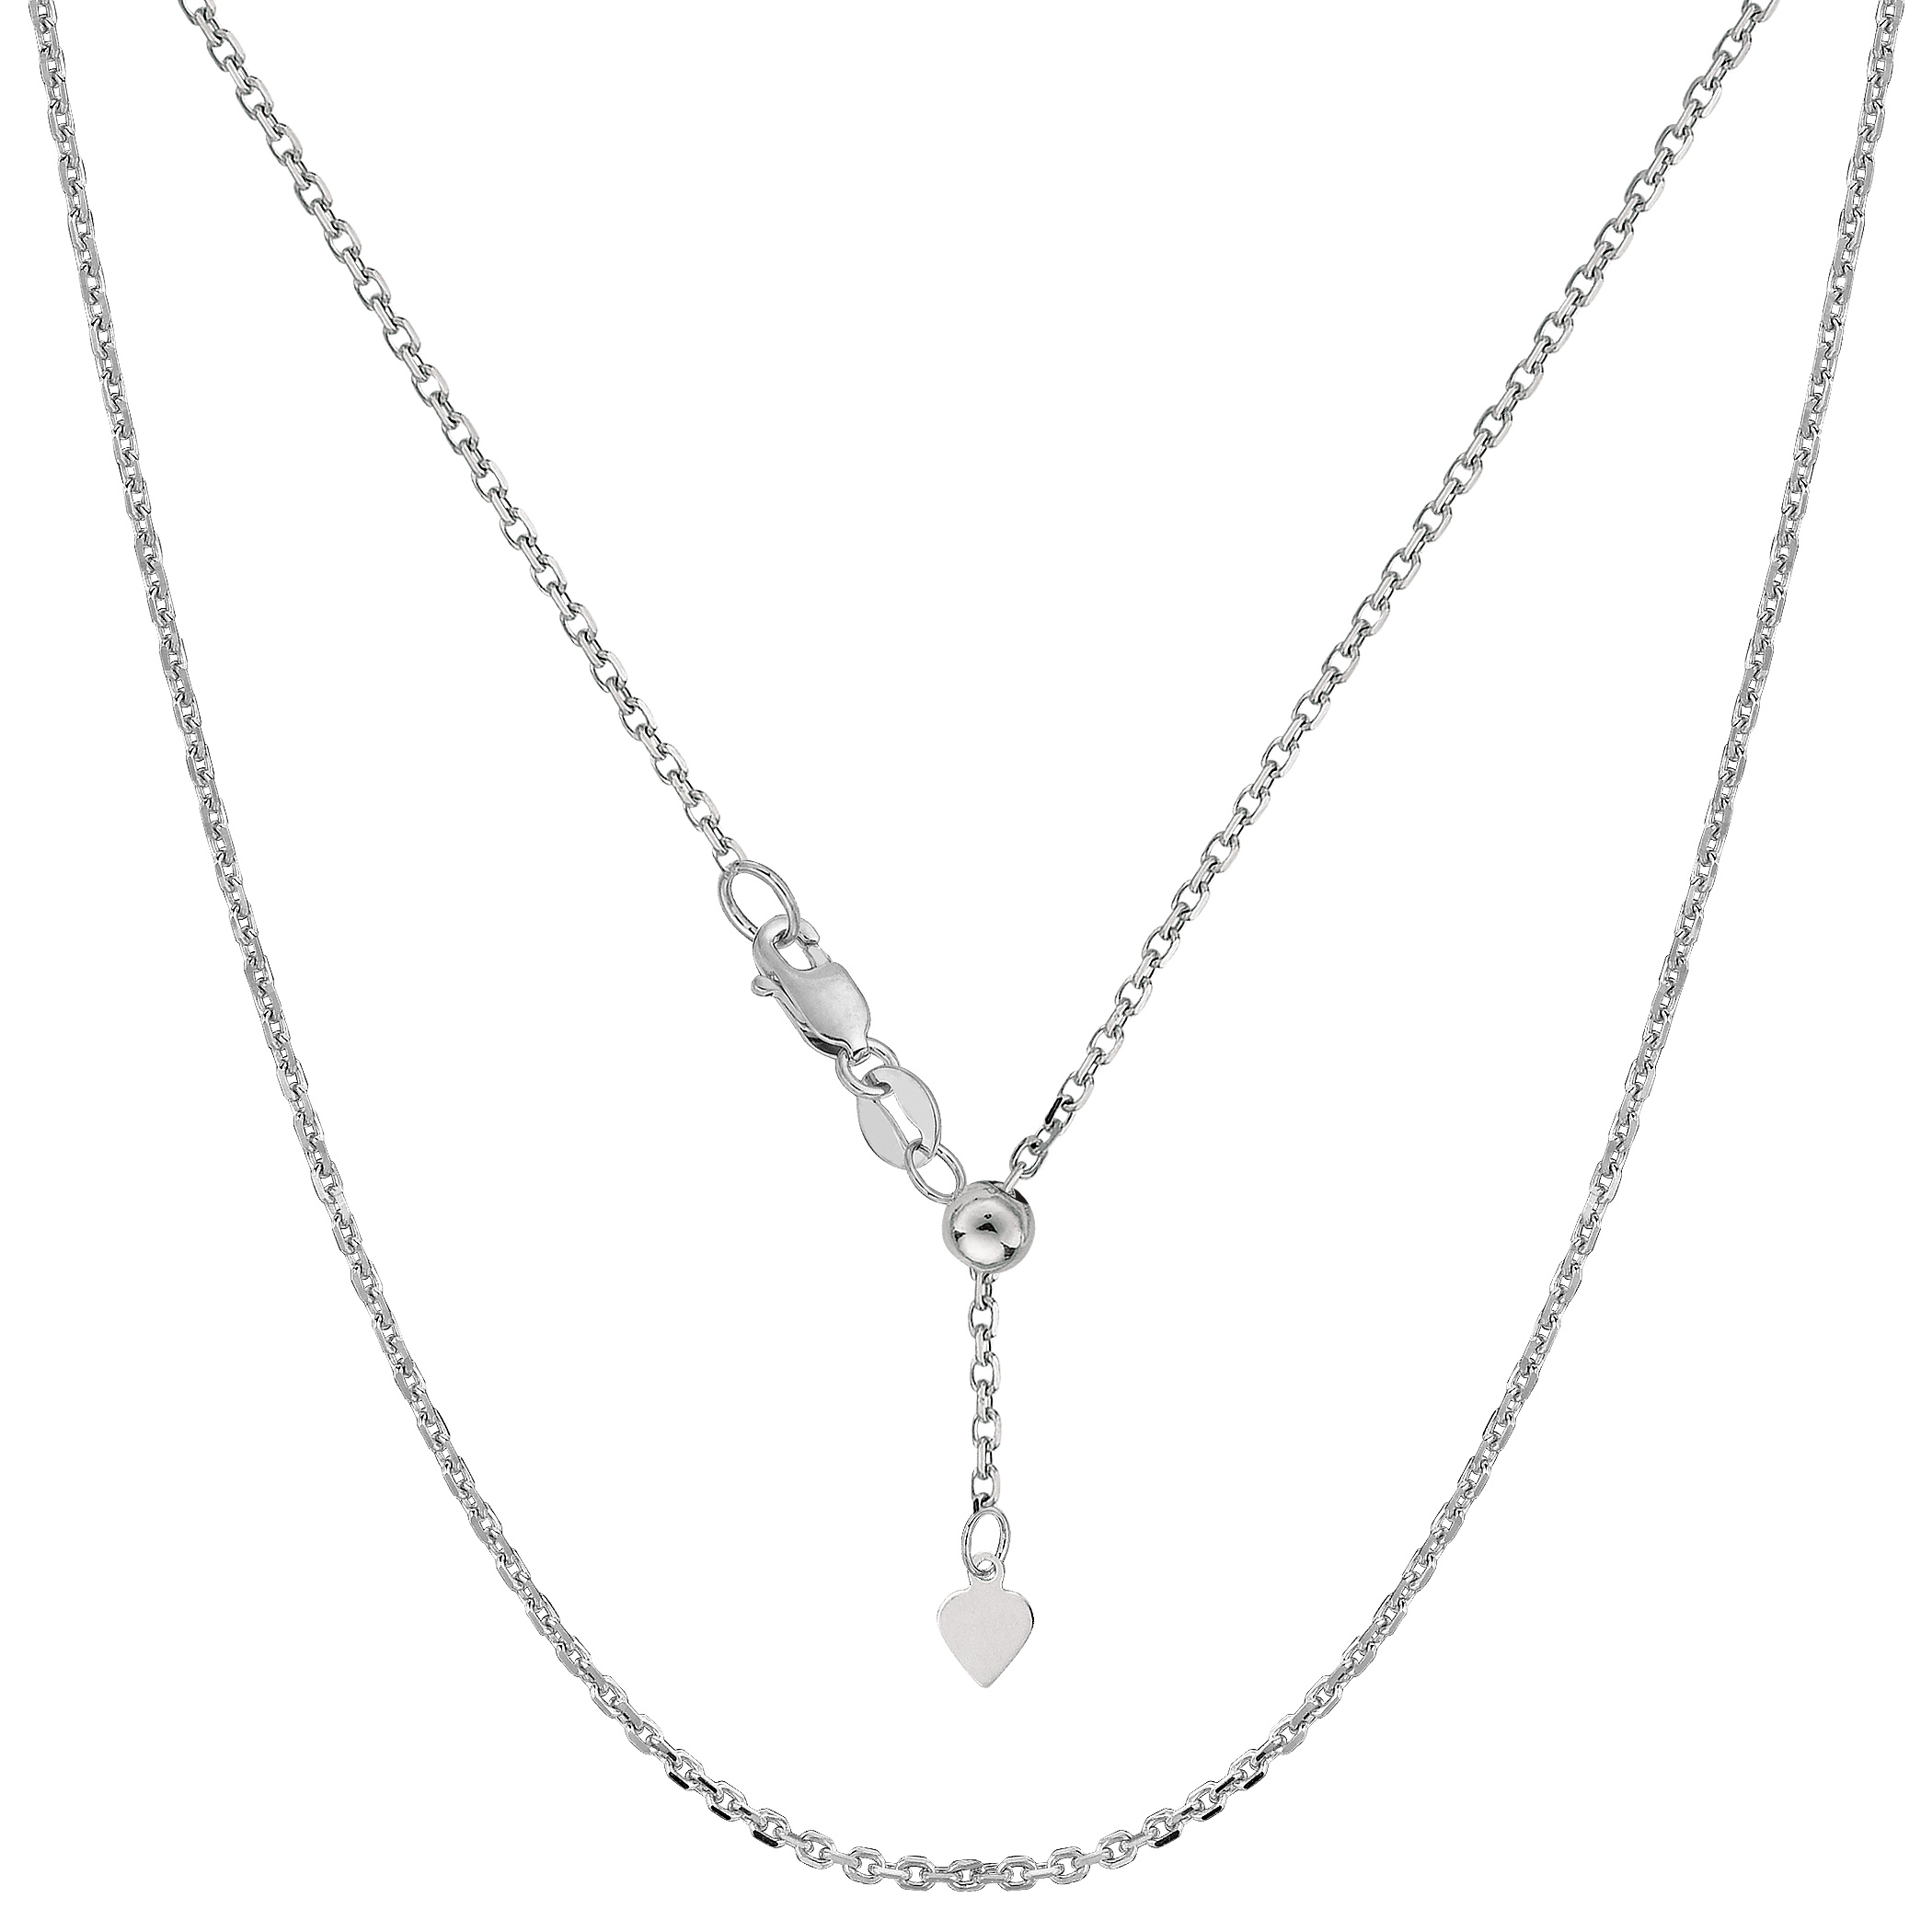 Sterling Silver Rhodium Plated 22  Sliding Adjustable Cable Chain Necklace, 1.5mm Using it by itself or combining it with charms and pendants, this 22 inch long adjustable cable style chain is a perfect addition to any jewelry fashionista collection.